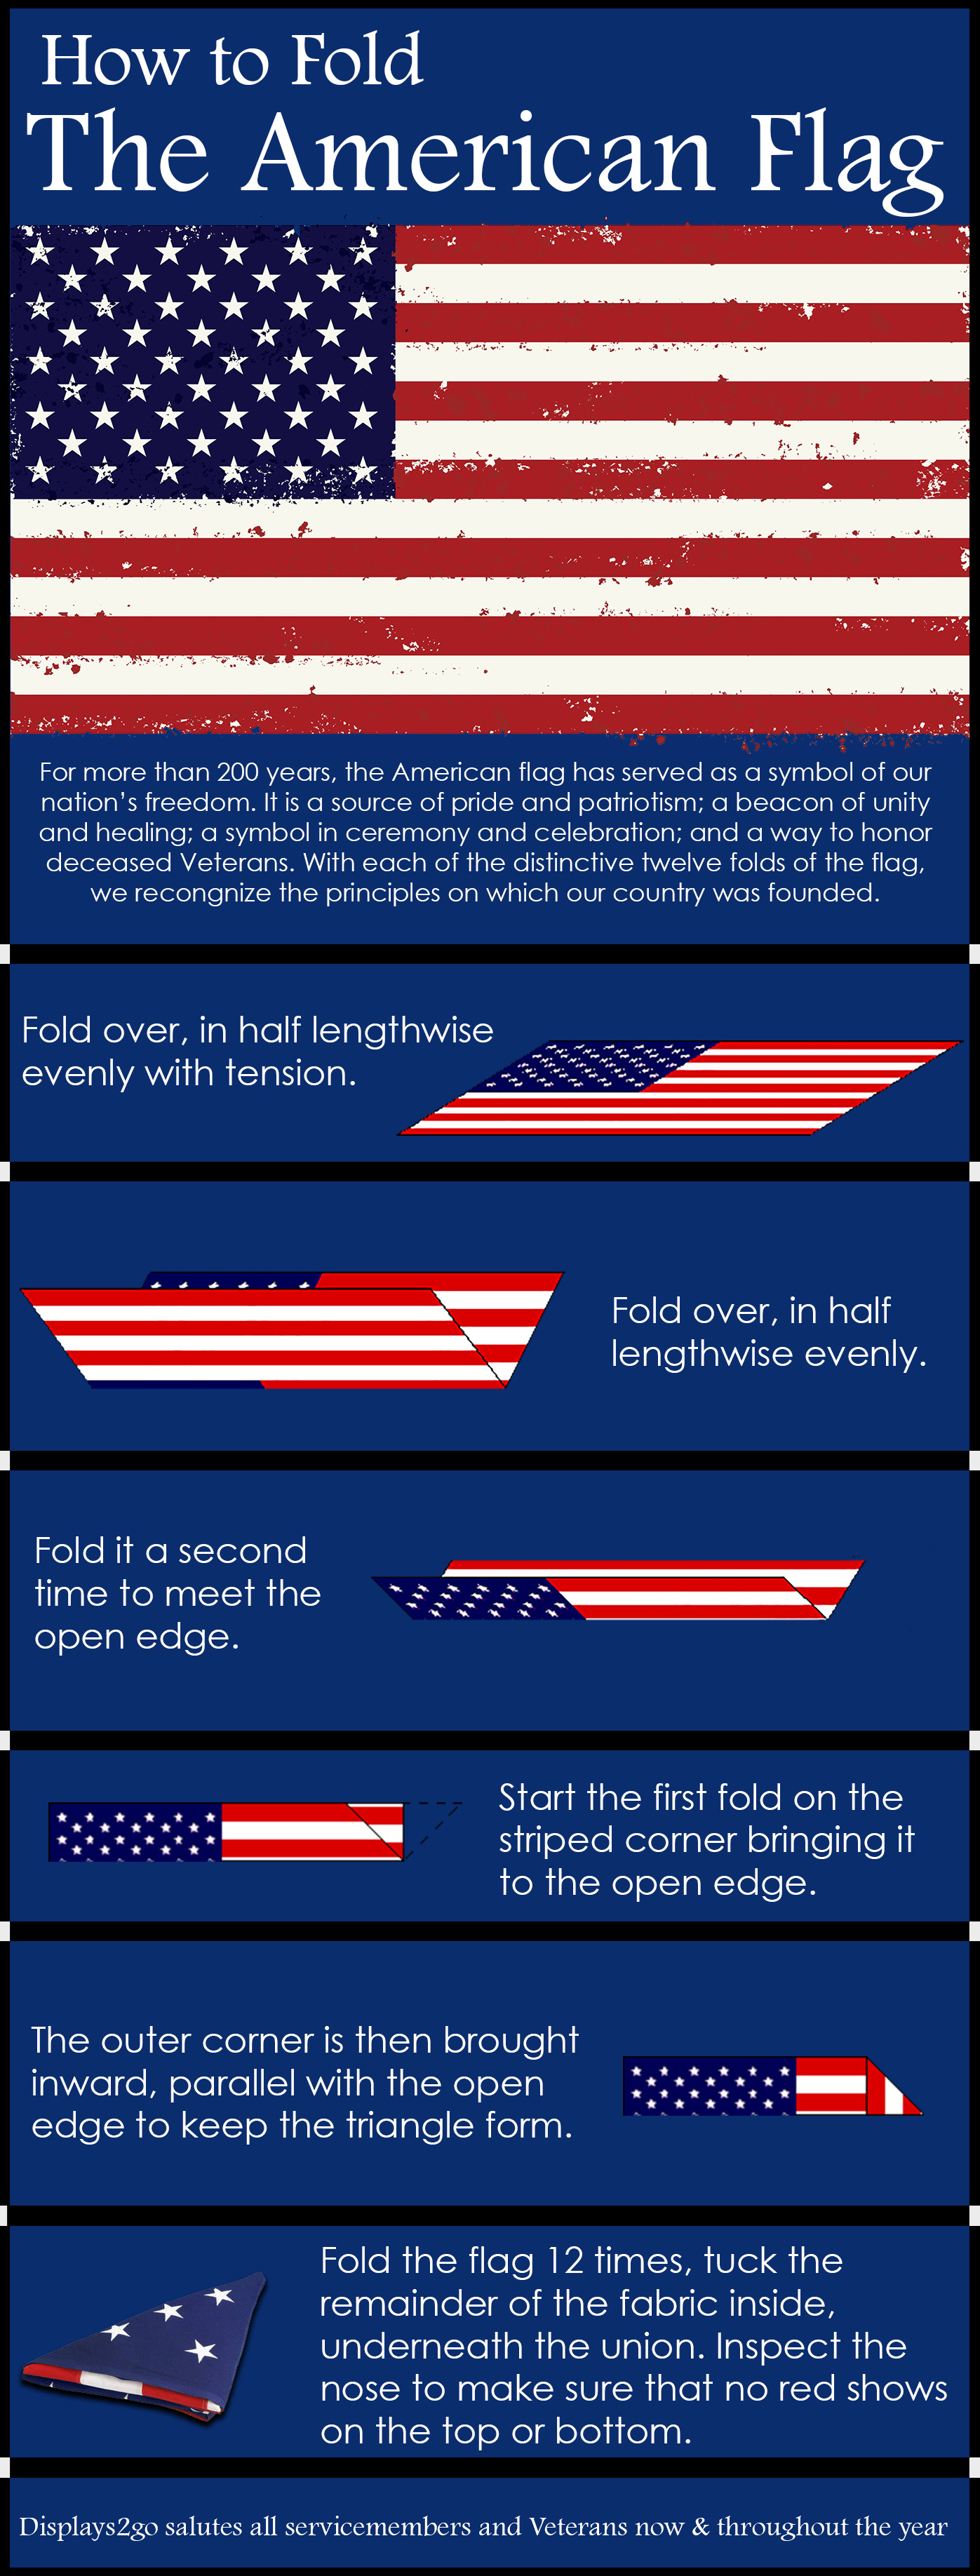 How To Properly Fold The American Flag